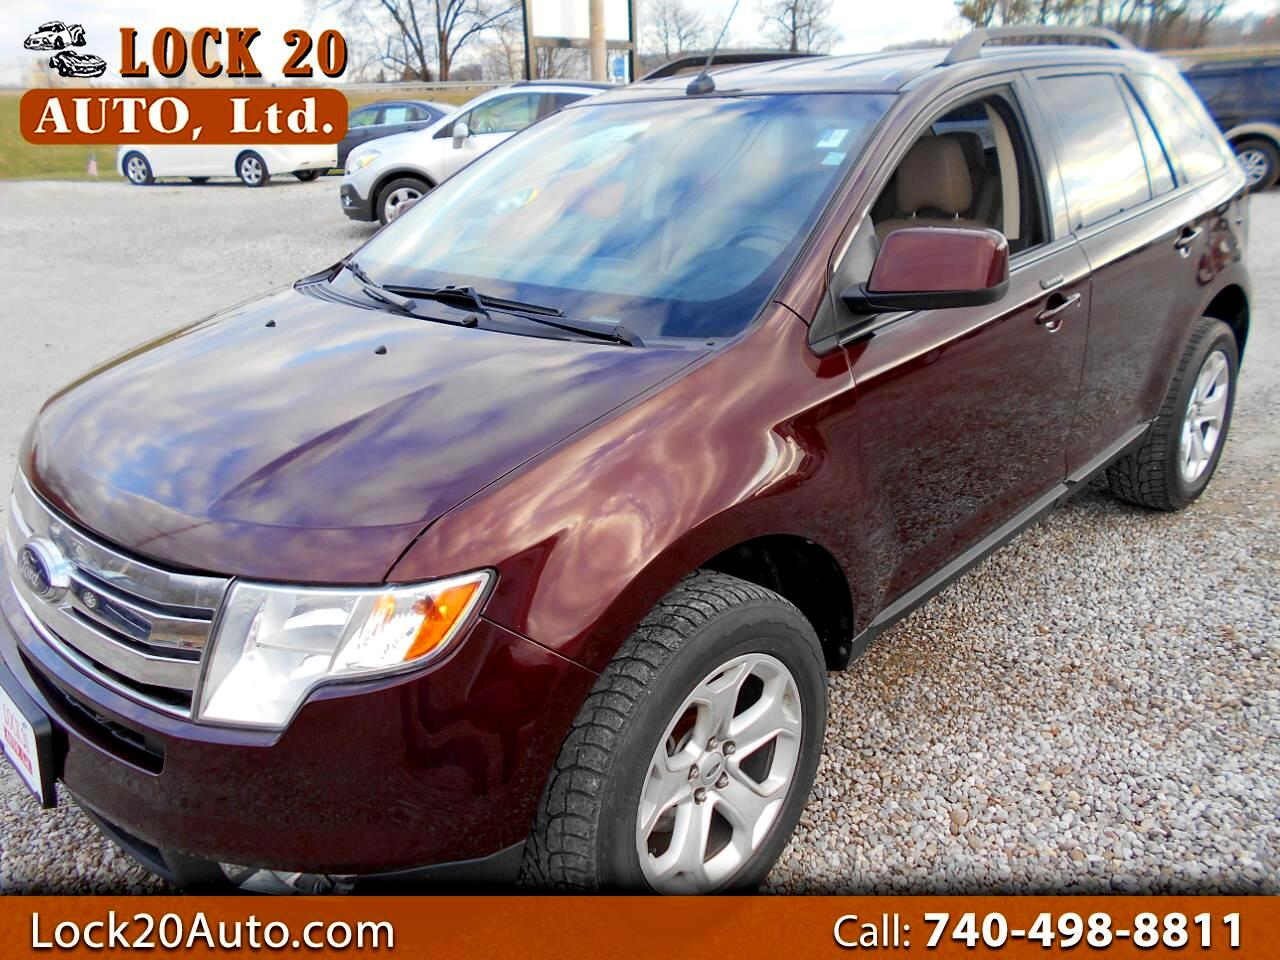 Lock 20 Auto Newcomerstown Oh New Used Cars Trucks Sales Service 1942 1951 Ford For Sale 2010 Edge 4dr Sel Awd